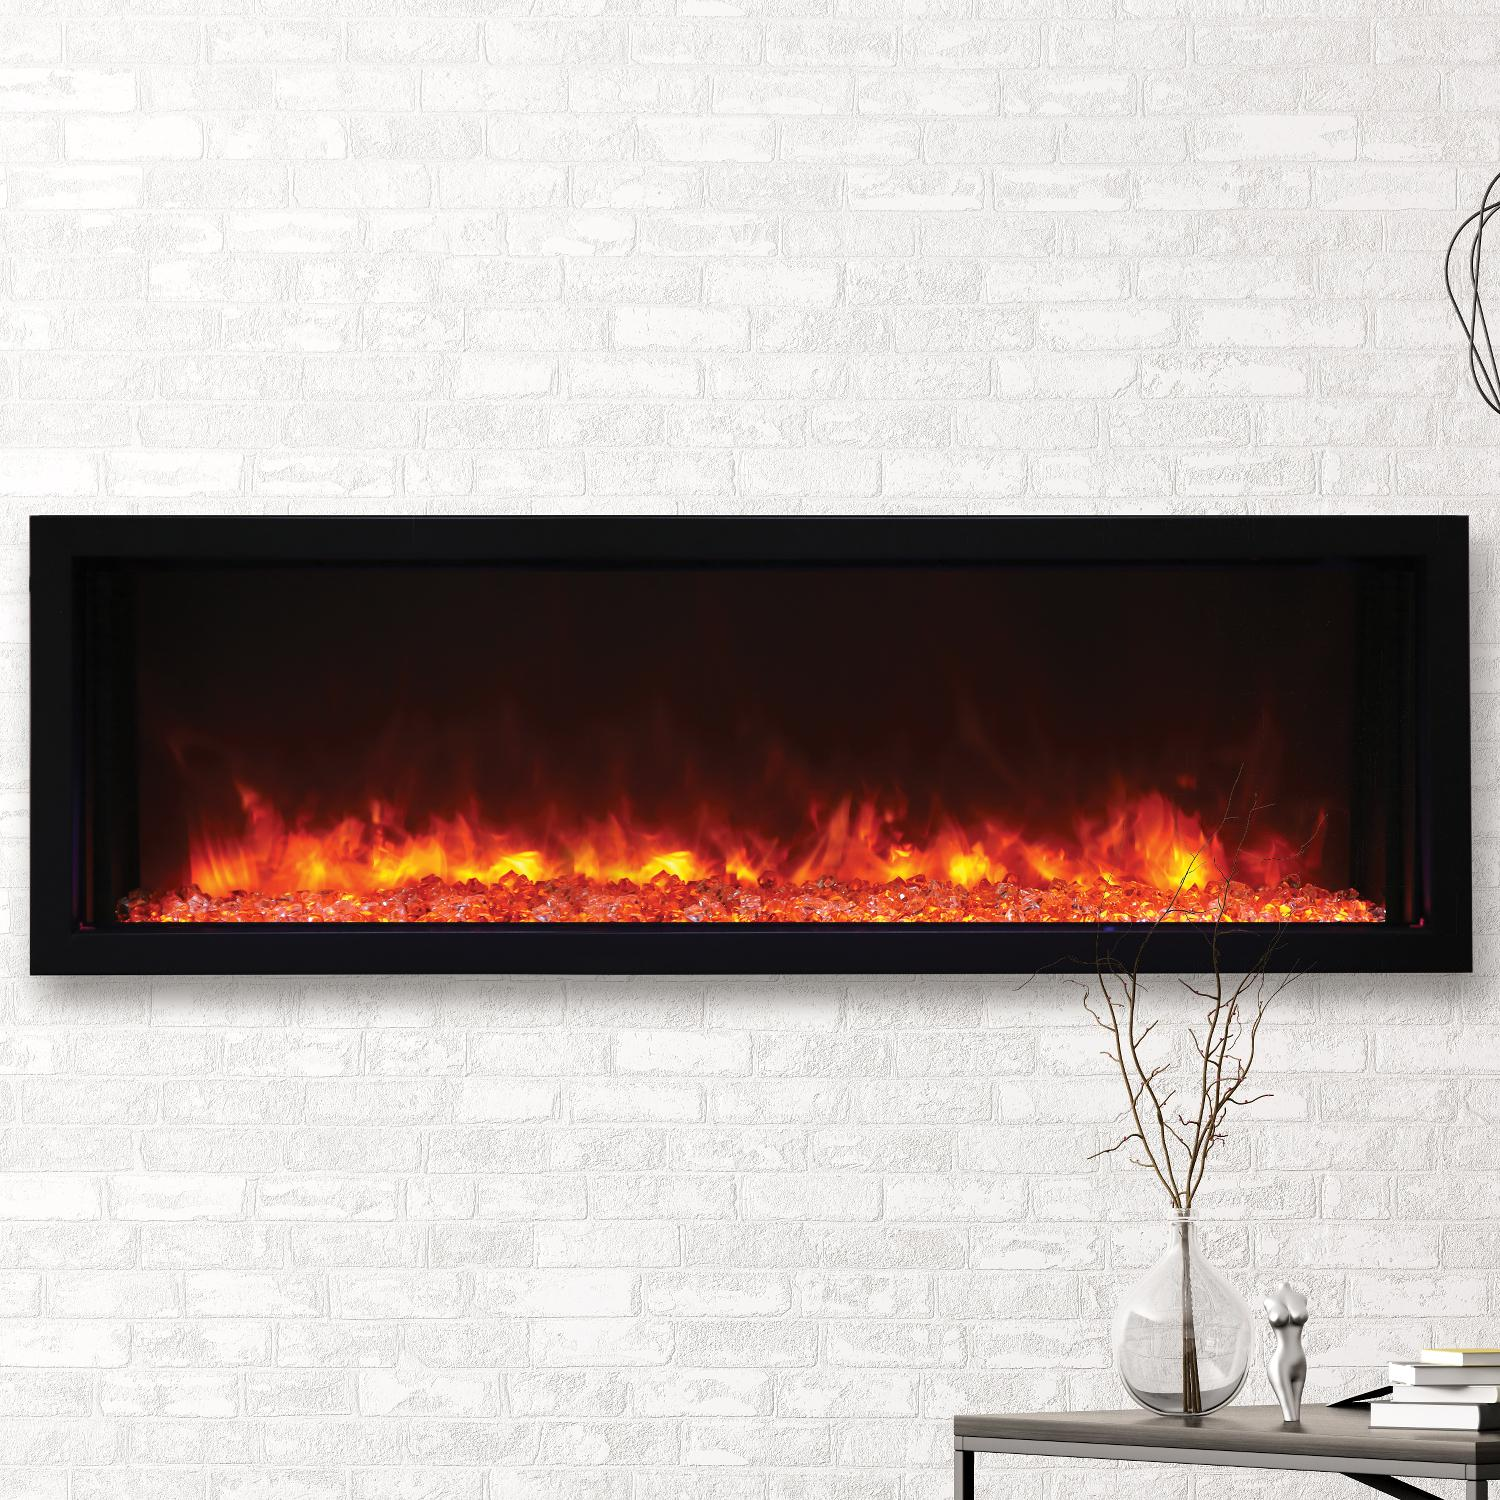 50 Extra Slim Electric Built-In only Electric Fireplace with blacksteel surround